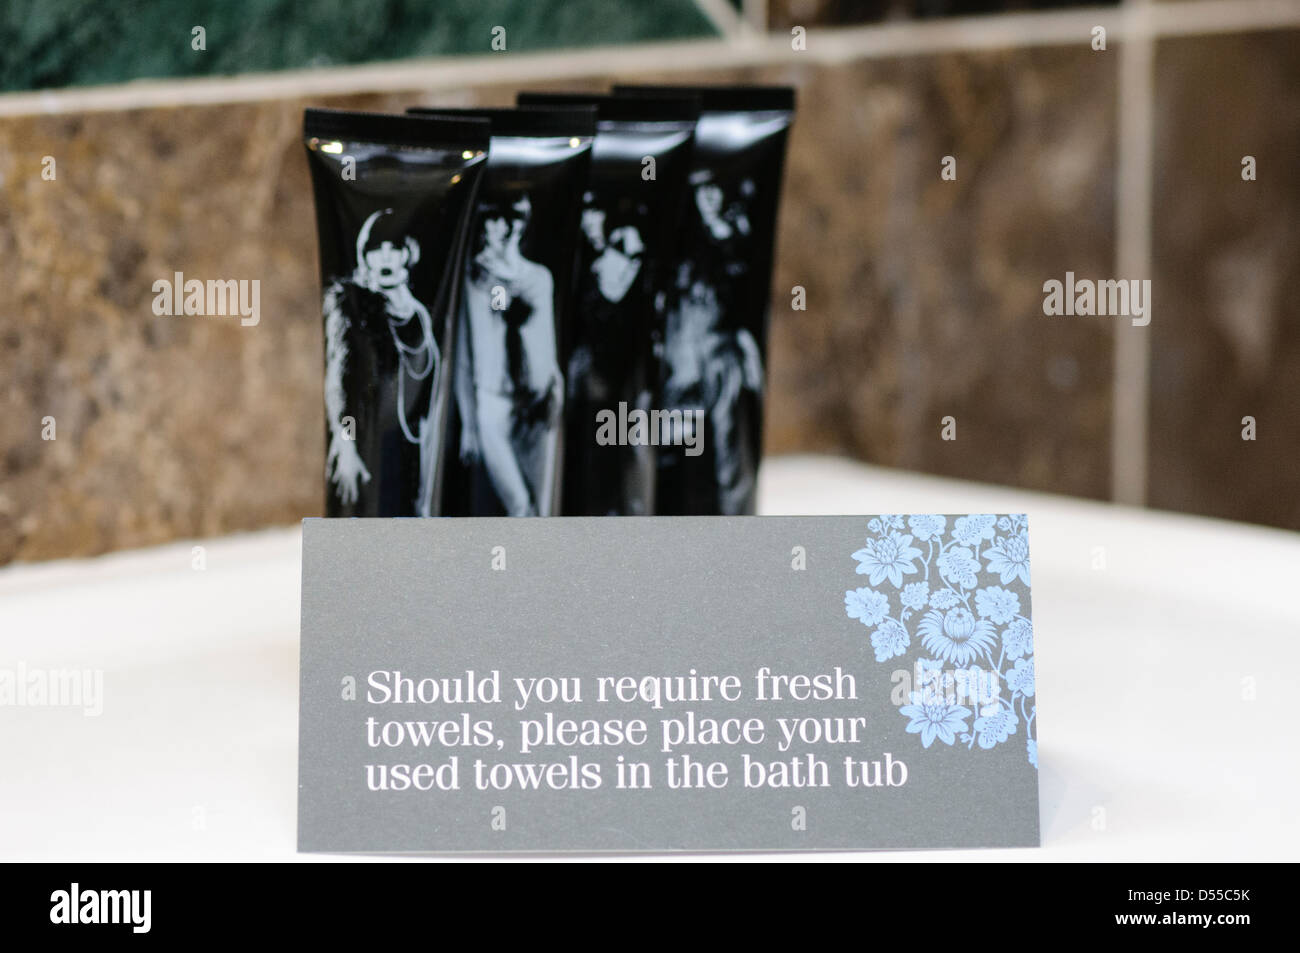 A sign in a hotel bathroom advising guests to place used towels in the bath tub should fresh ones be required. - Stock Image